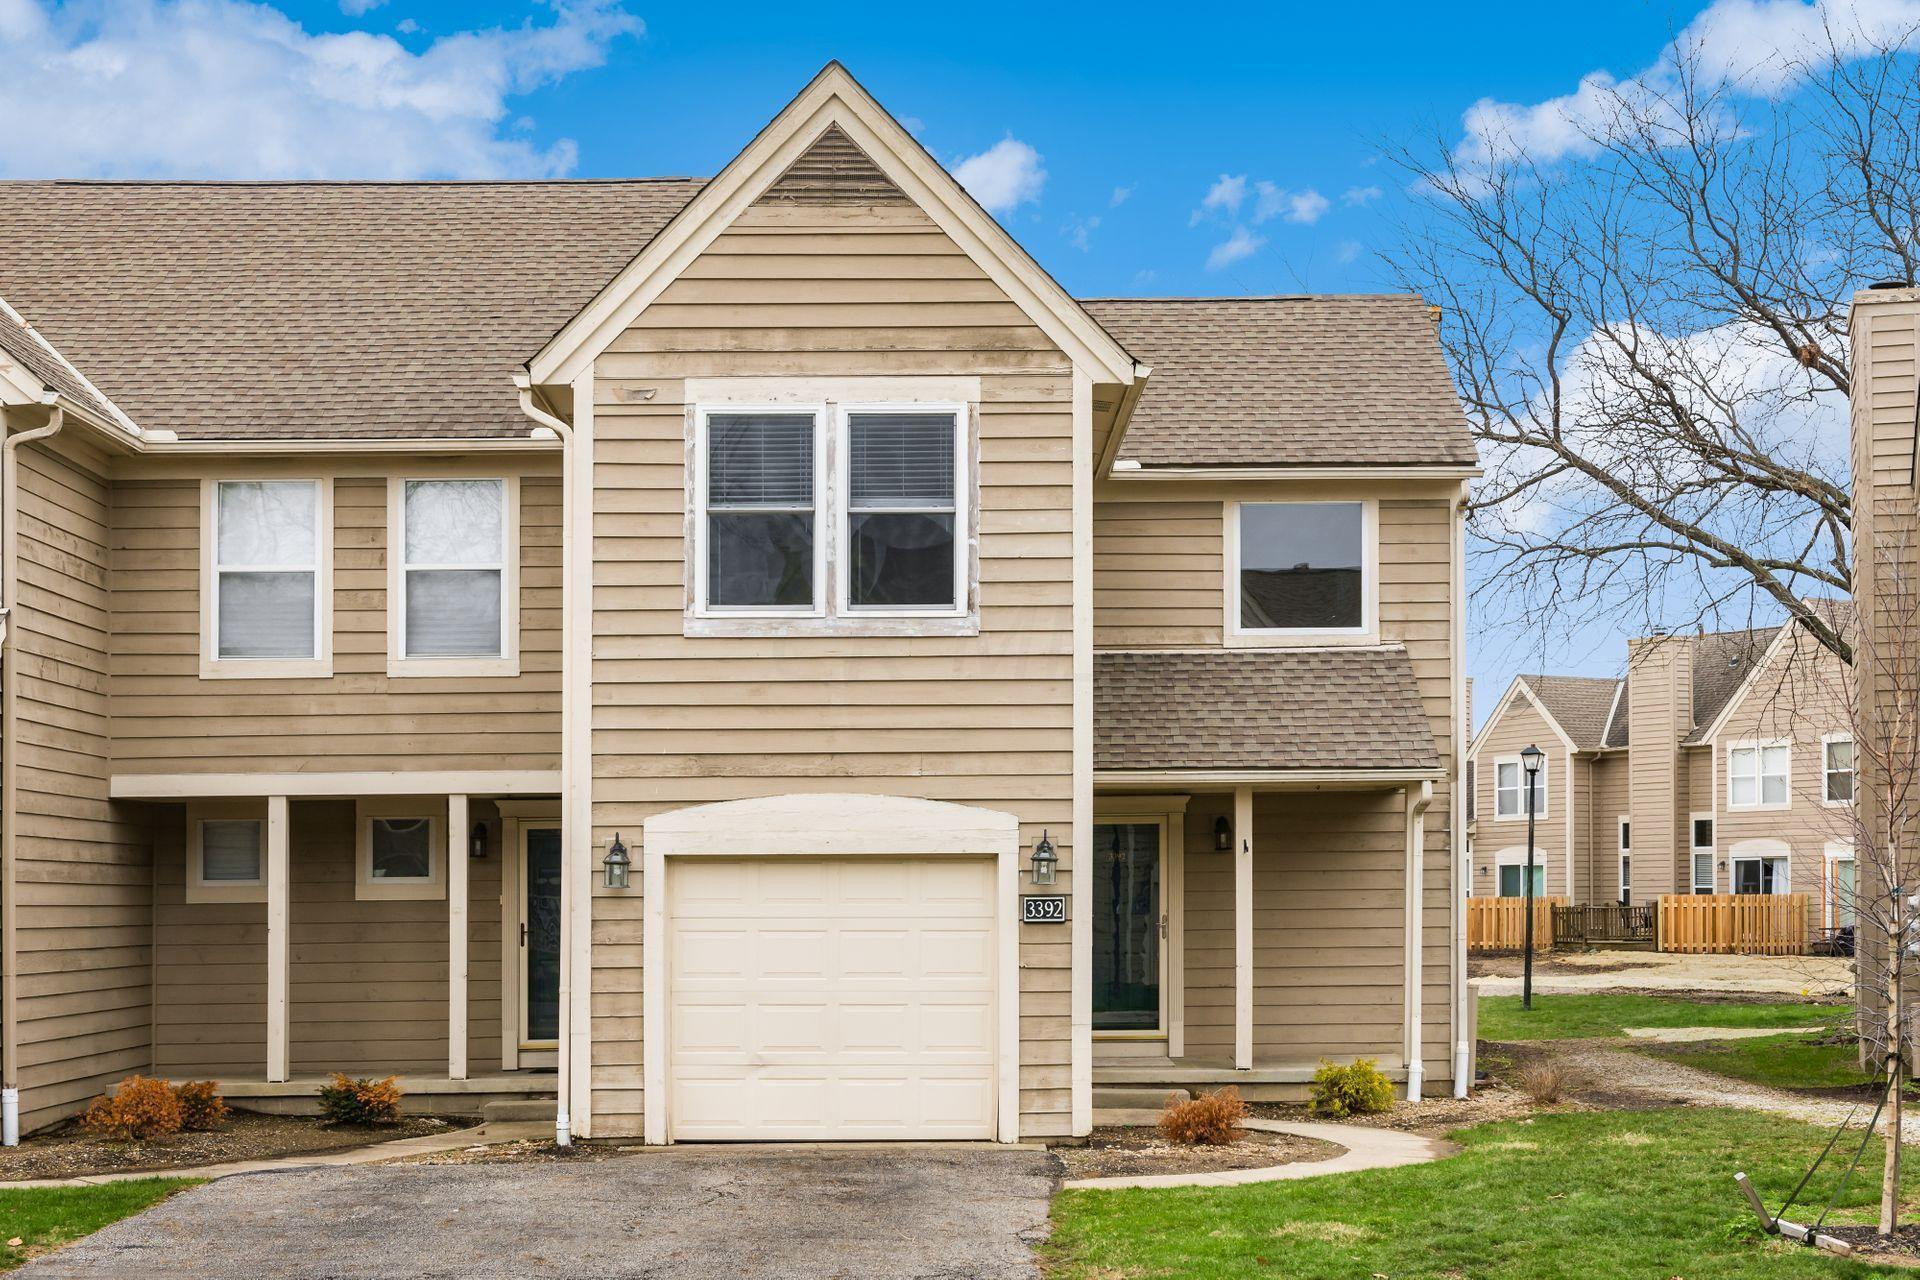 3392 Eastwoodlands Trail, Hilliard, Ohio 43026, 2 Bedrooms Bedrooms, ,3 BathroomsBathrooms,Residential,For Sale,Eastwoodlands,221000611